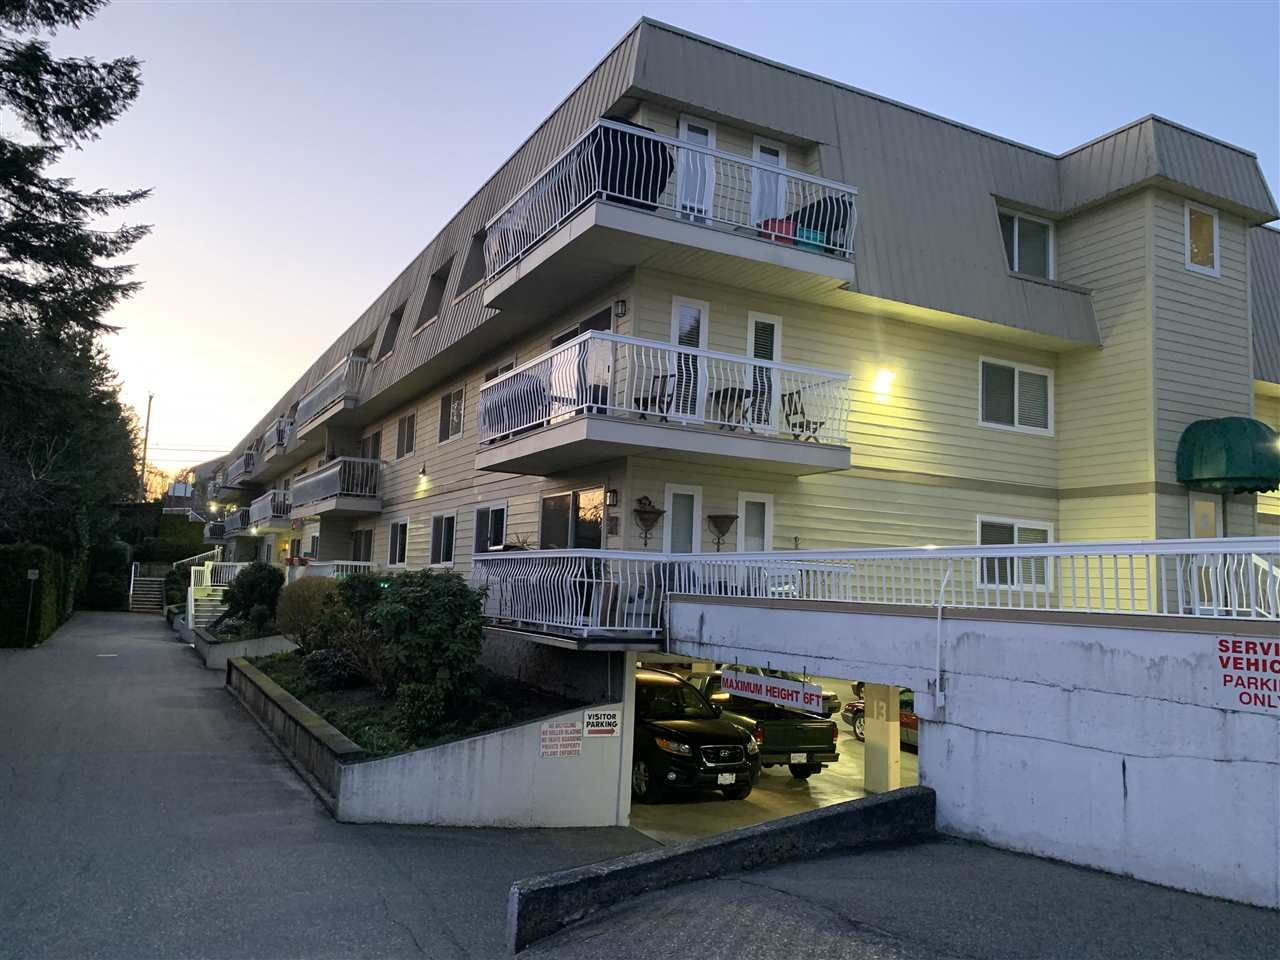 "Main Photo: 218 7436 STAVE LAKE Street in Mission: Mission BC Condo for sale in ""Glenkirk Court"" : MLS®# R2437373"